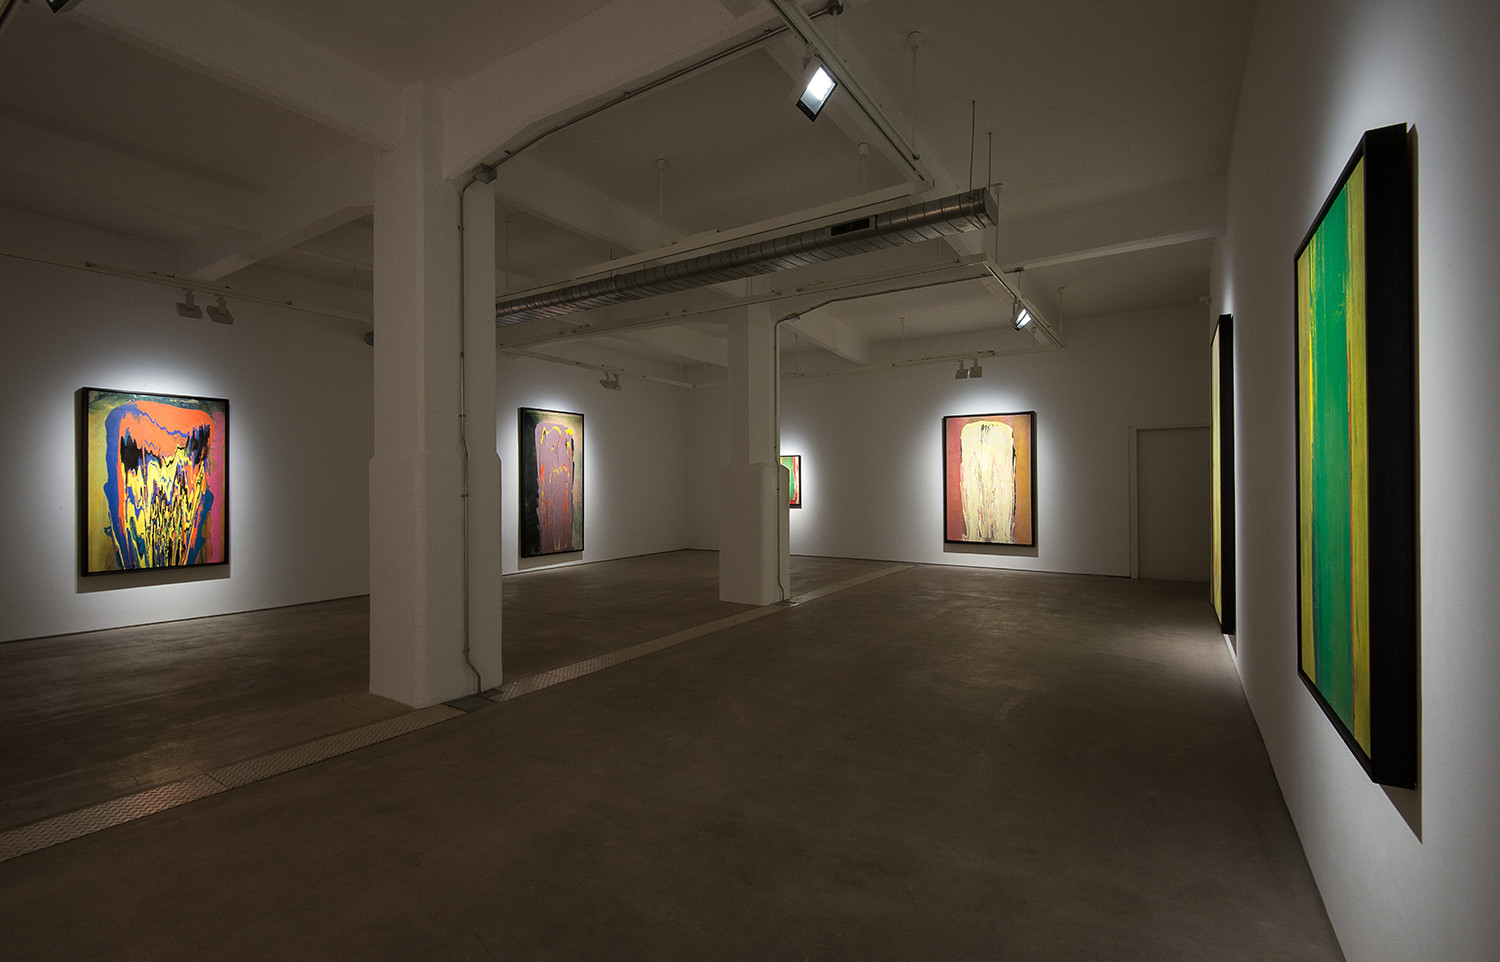 Installation view 'The Poured Paintings', Hales London, 11 September - 24 October 2015